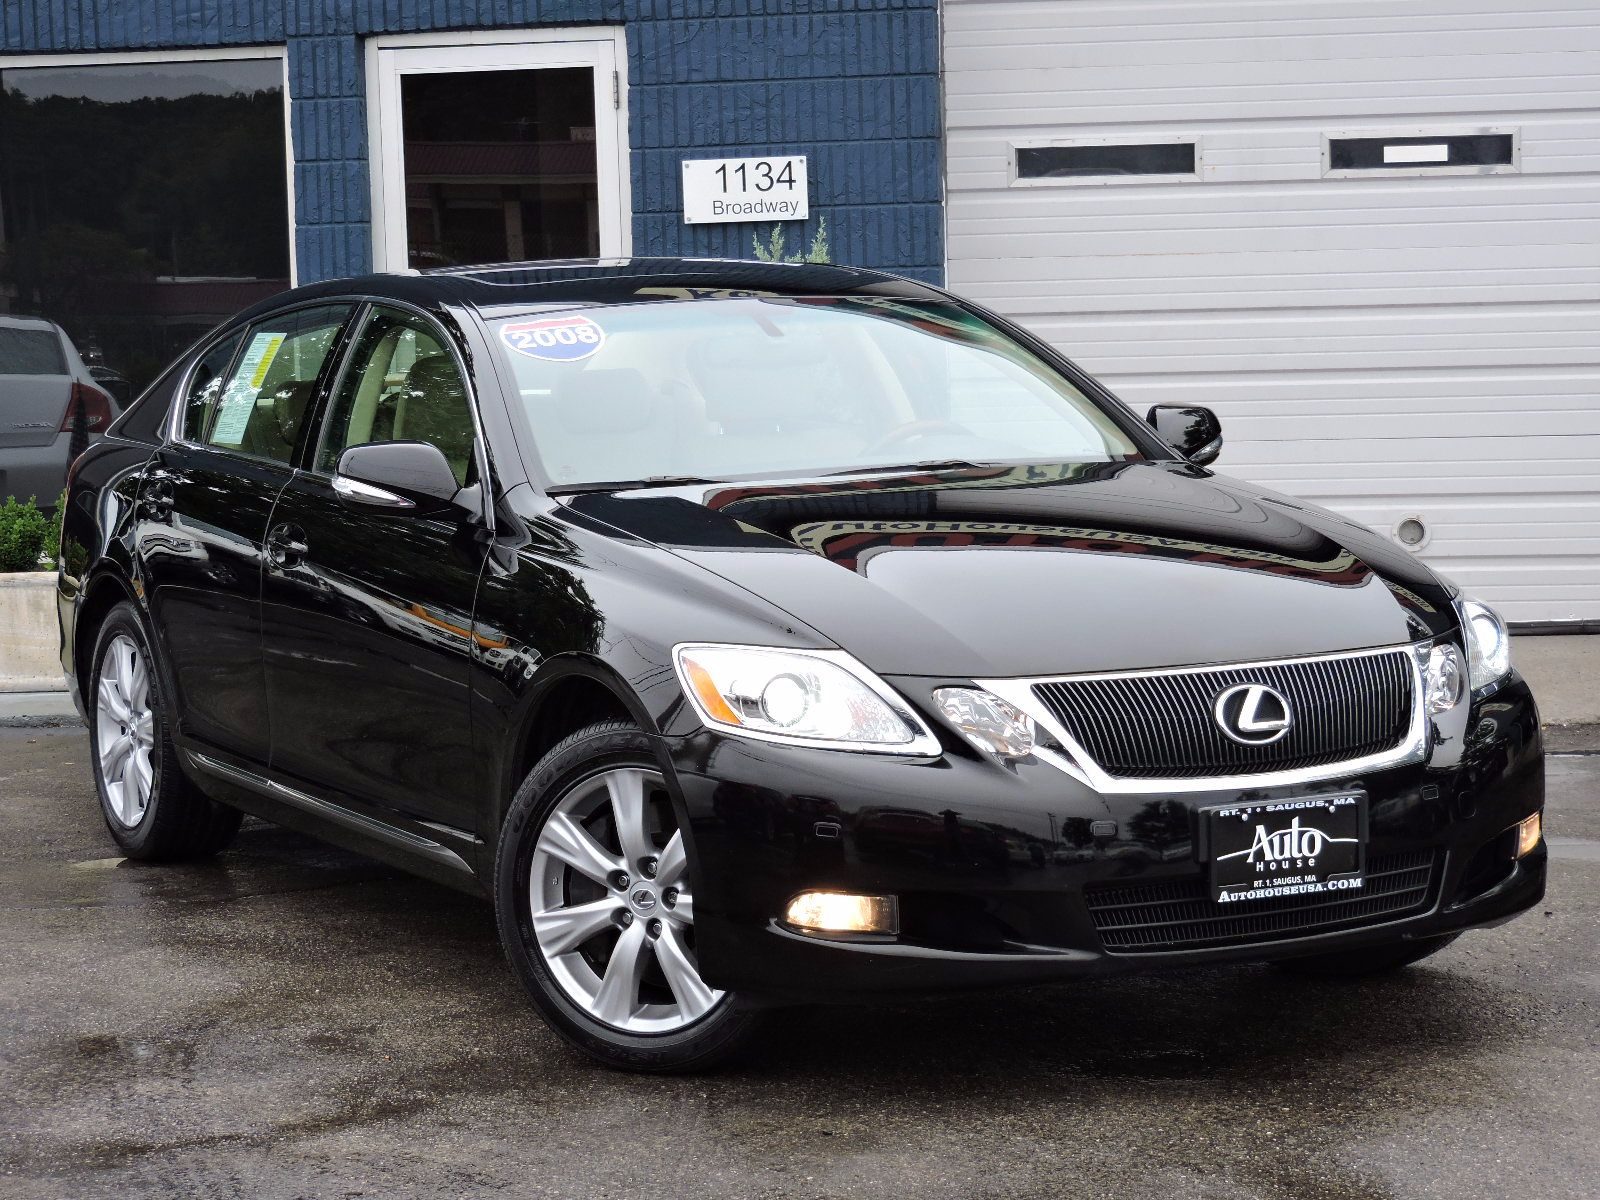 used 2008 lexus gs 350 ltz at auto house usa saugus. Black Bedroom Furniture Sets. Home Design Ideas